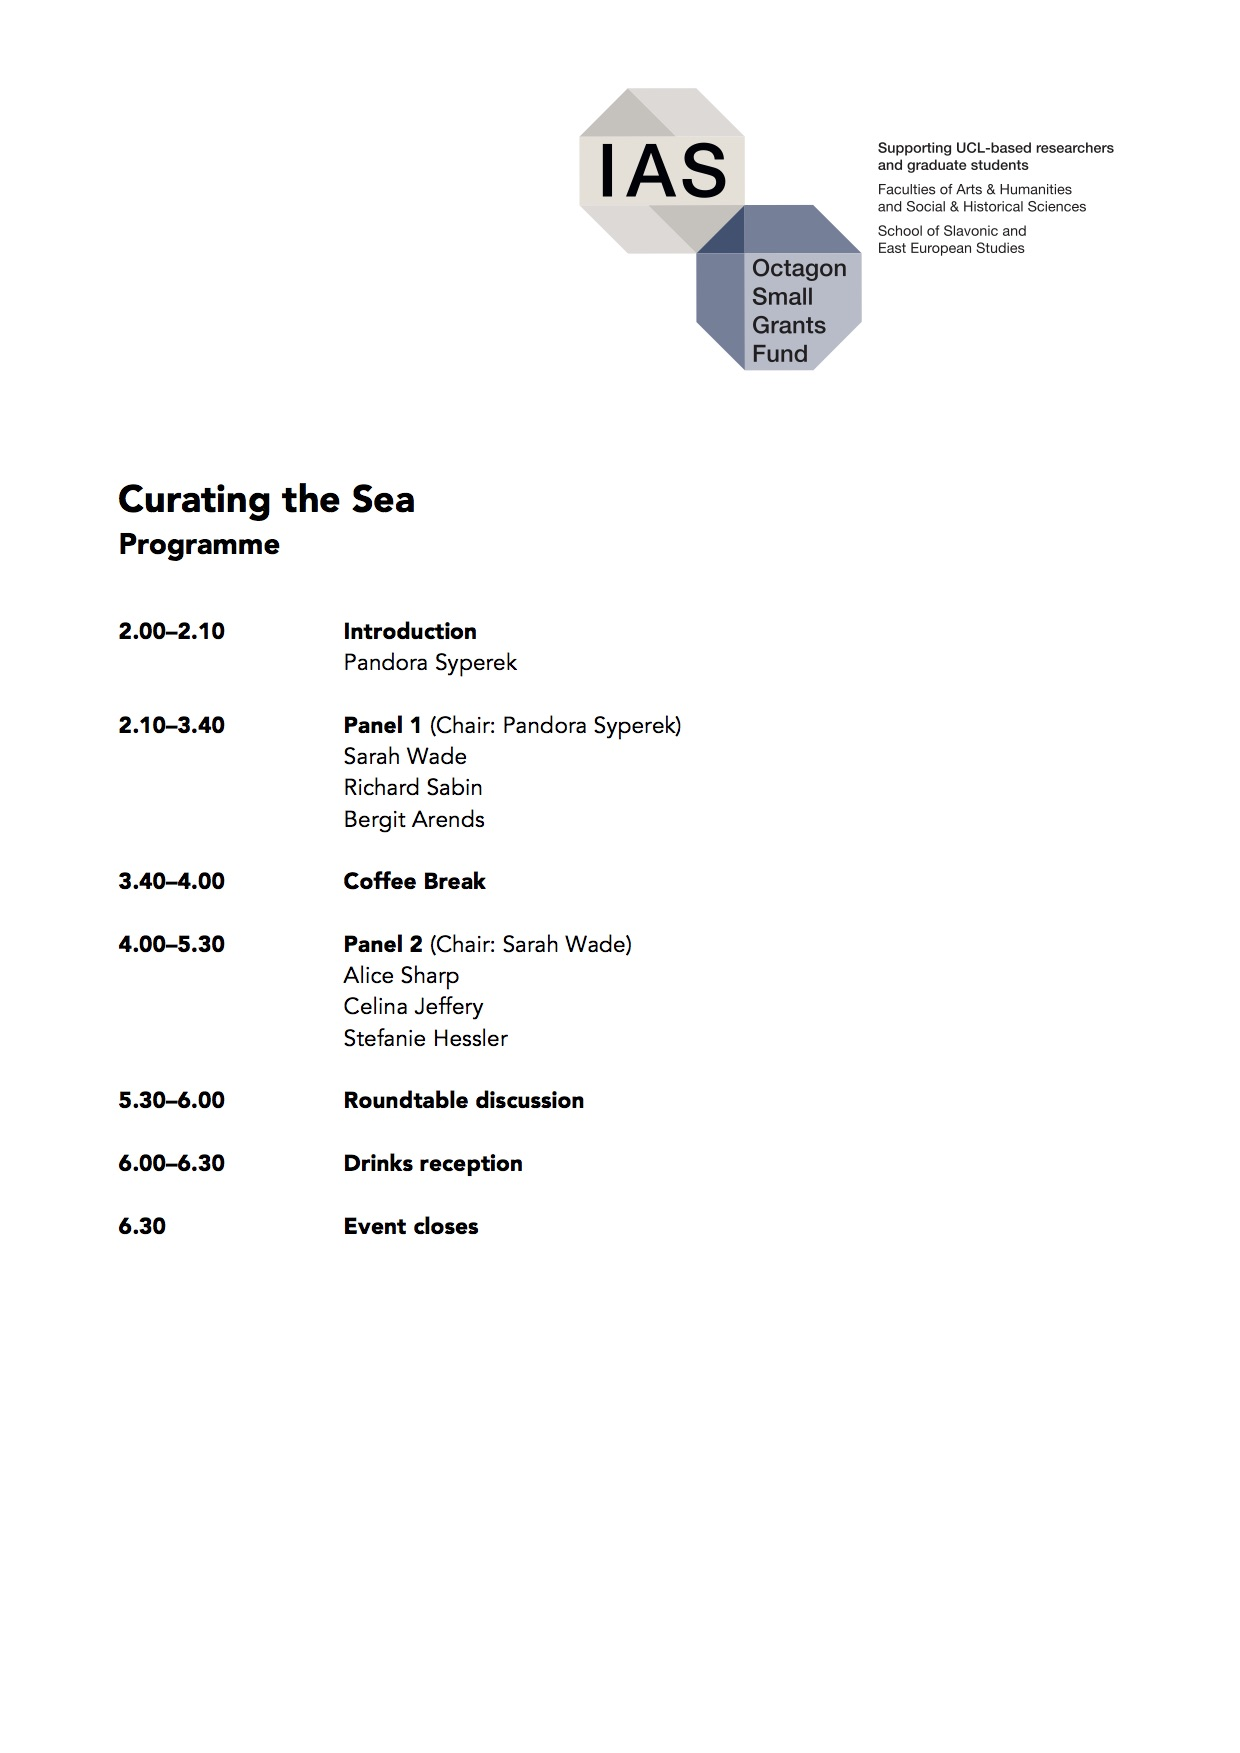 Curating the Sea Event Details Final.jpg